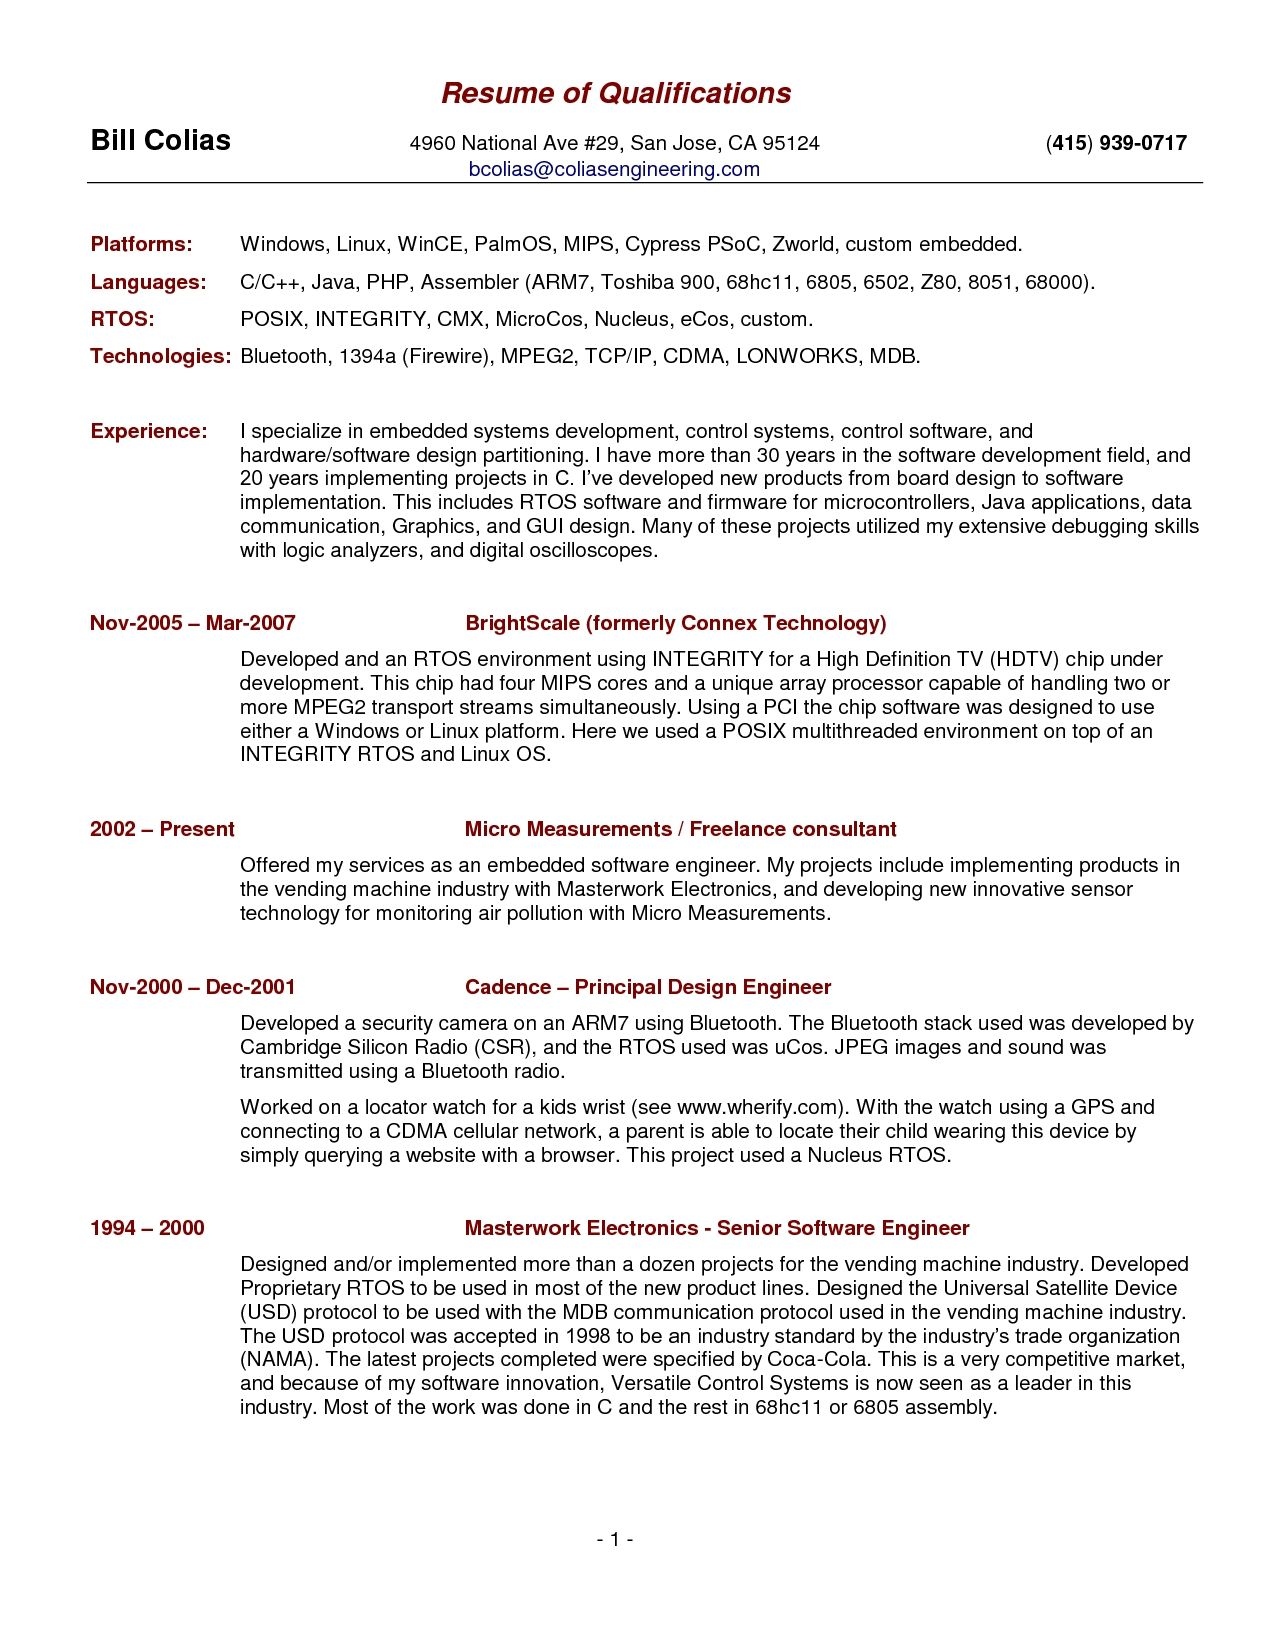 qualifications for a resume examples 7f8ea3a2a new resume skills